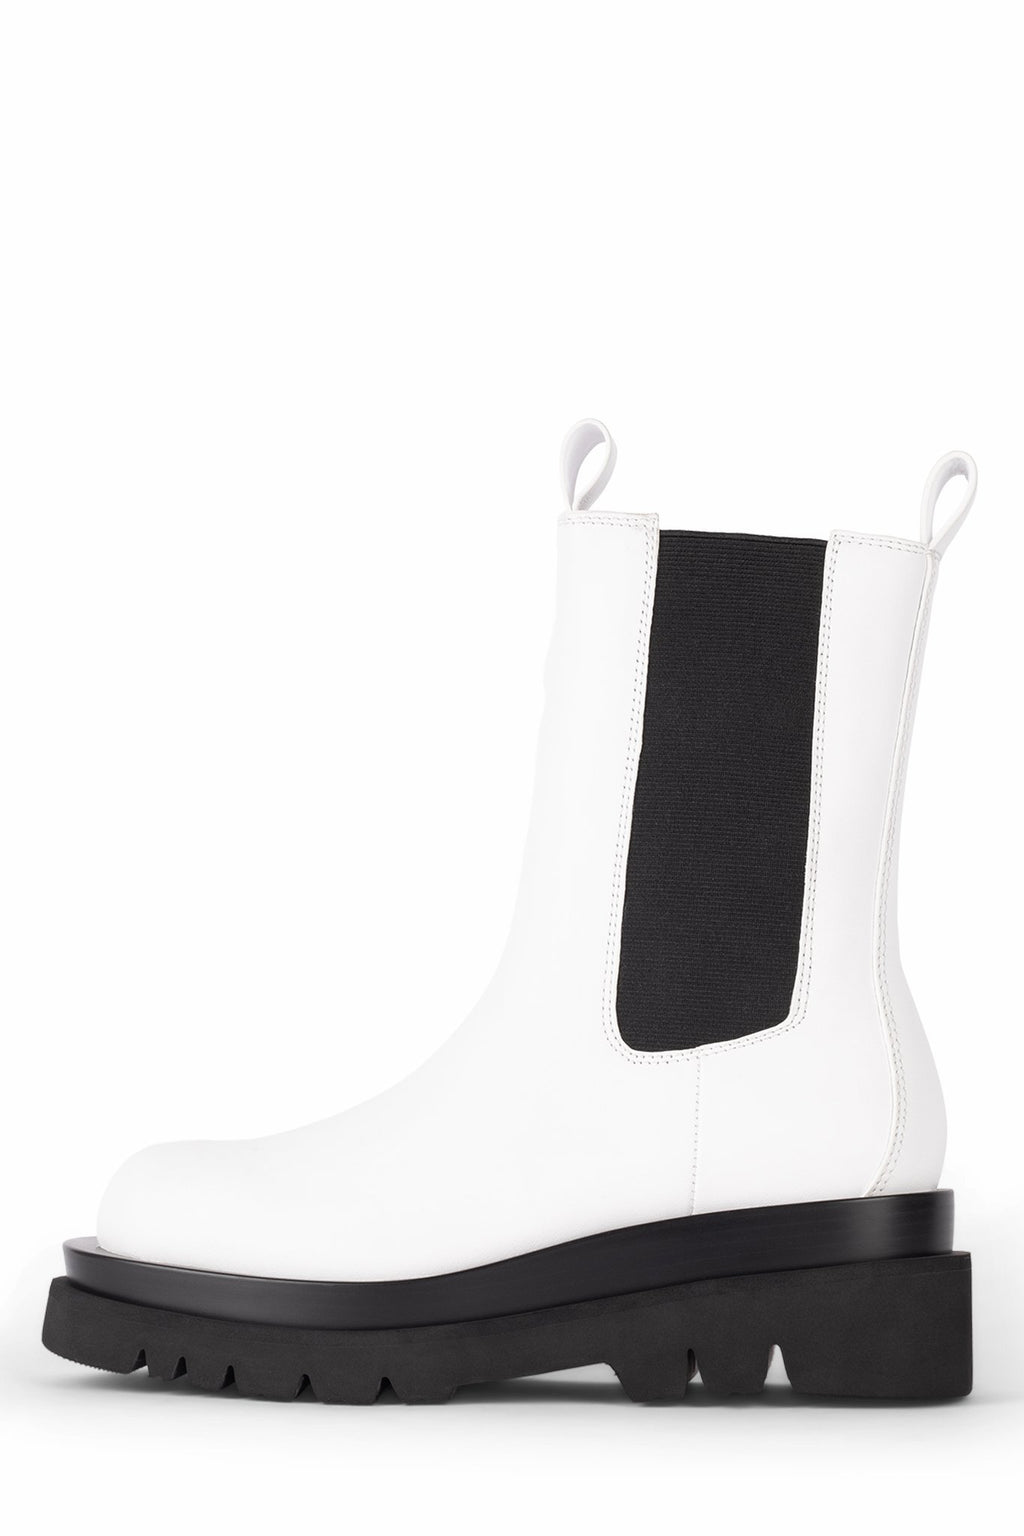 TANKED Platform Boot Jeffrey Campbell White 6